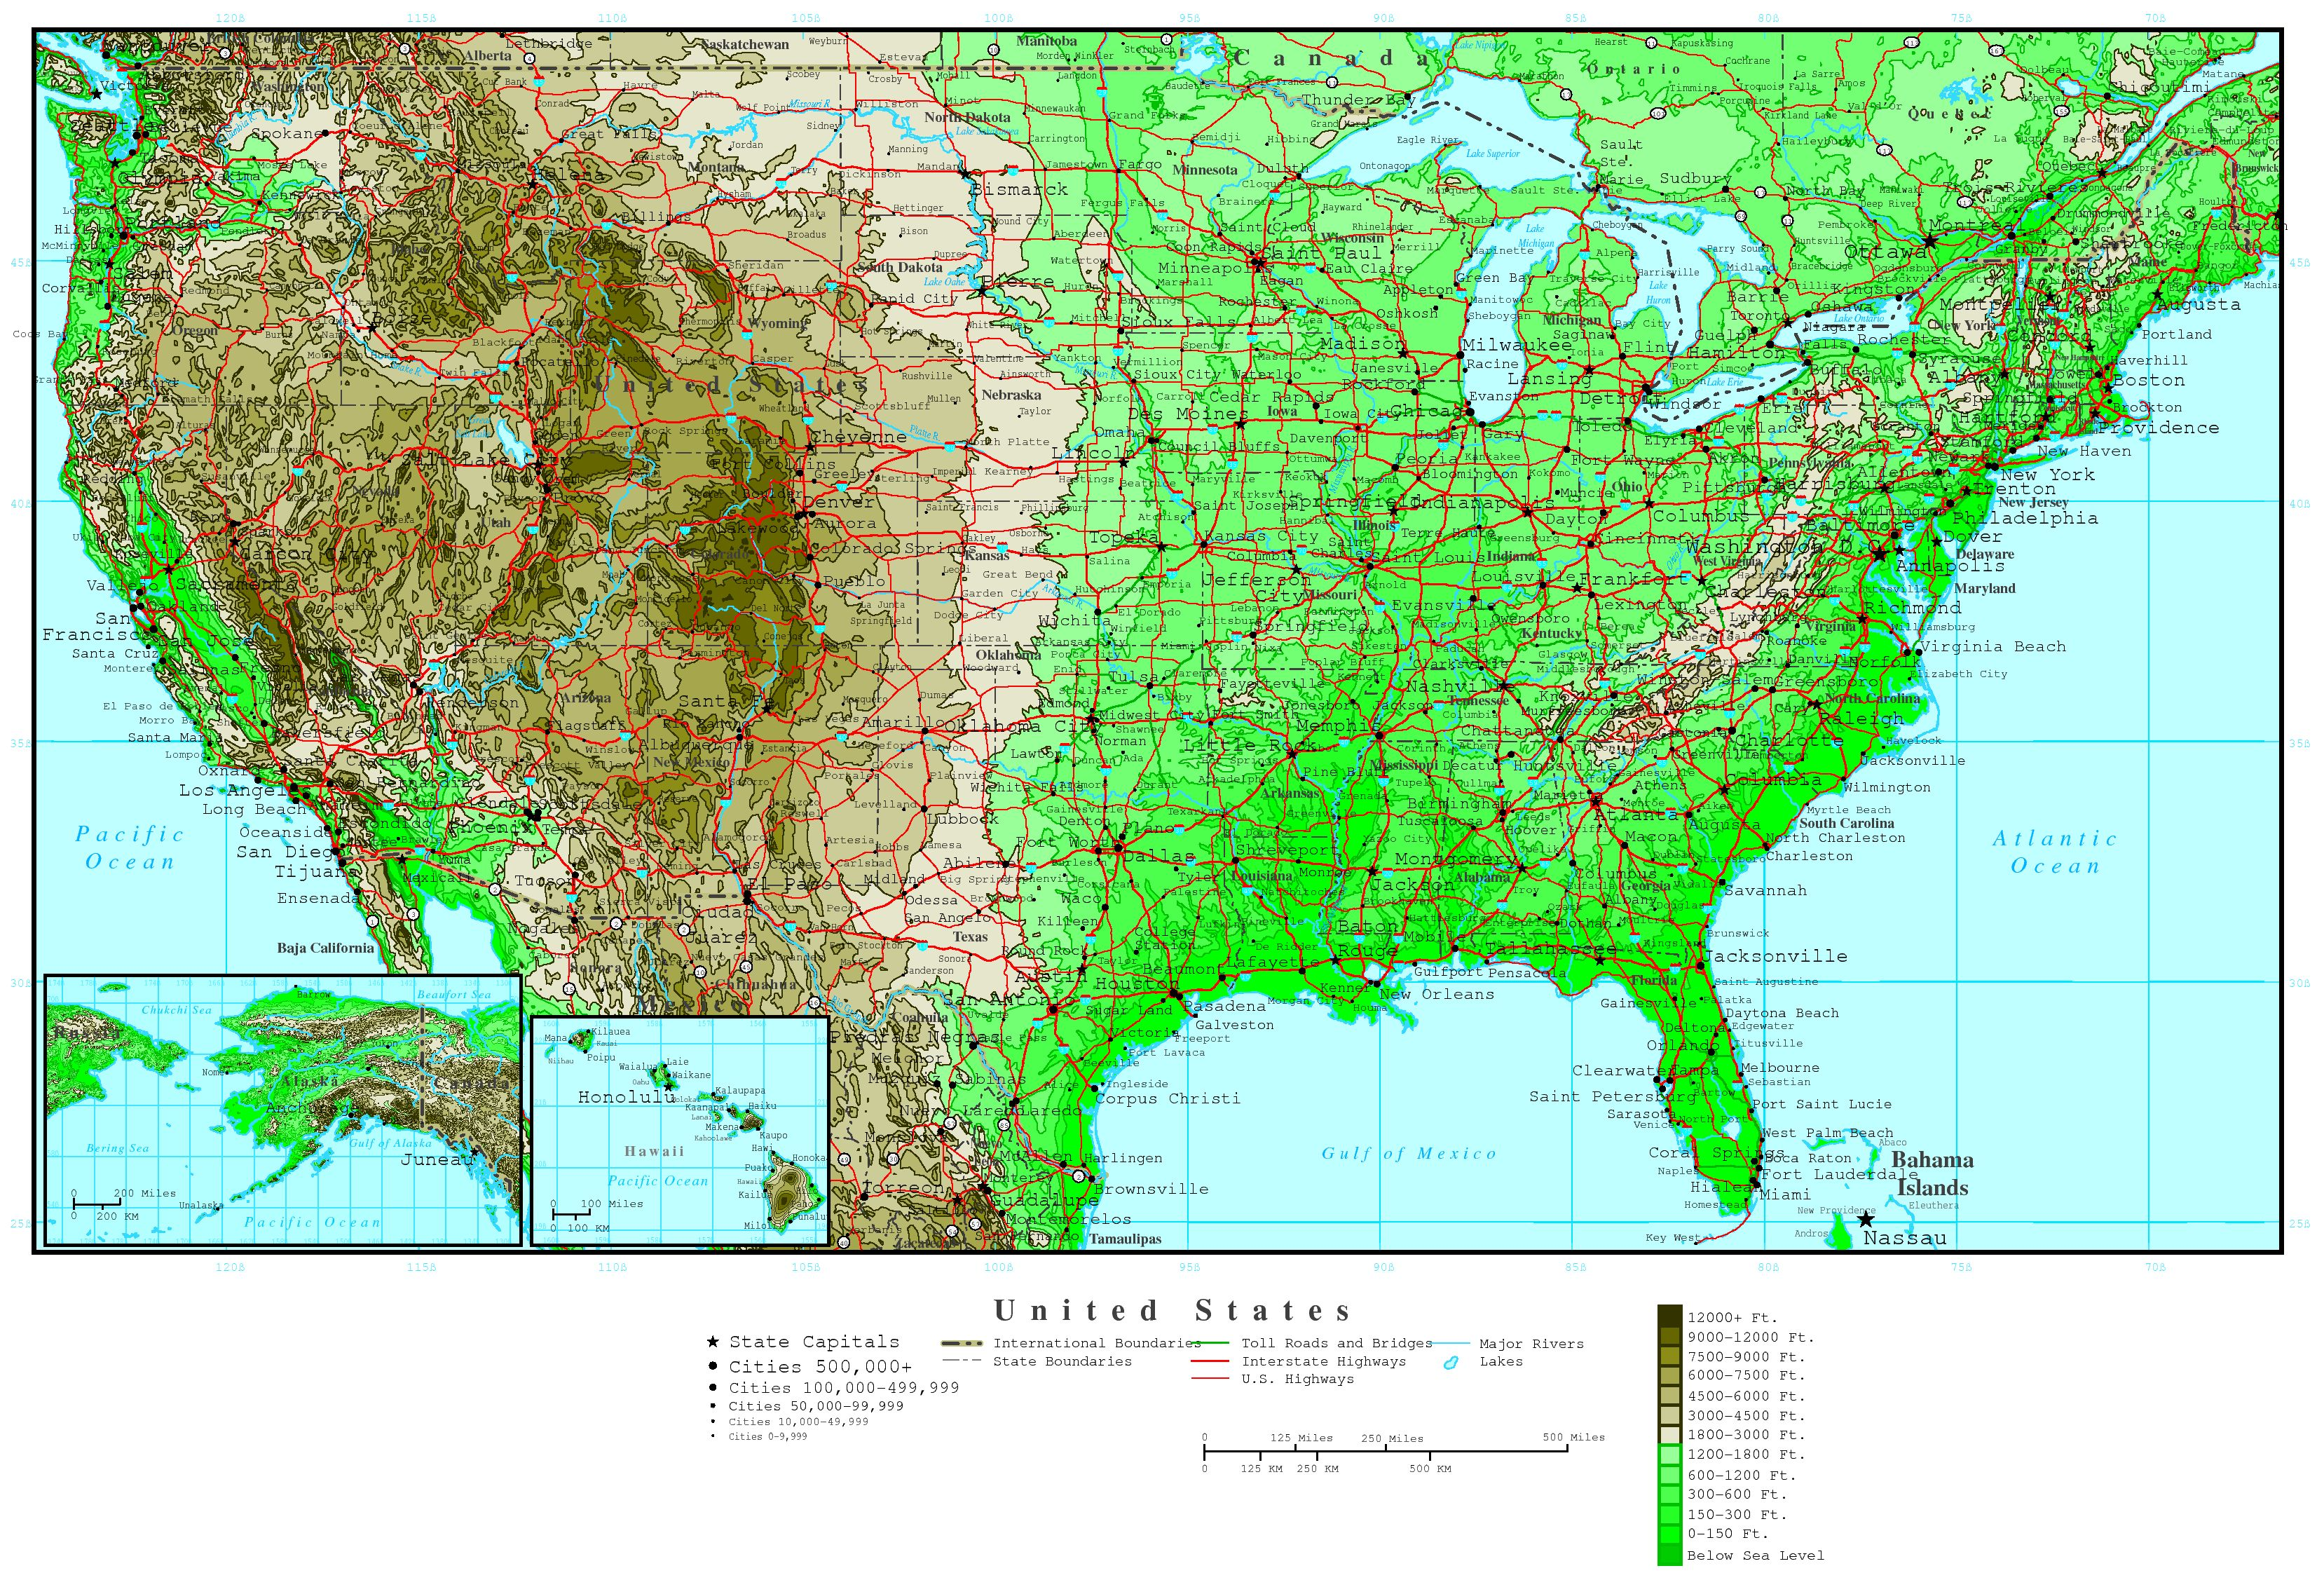 Maps Of The USA The United States Of America Map Library - Large detailed us map